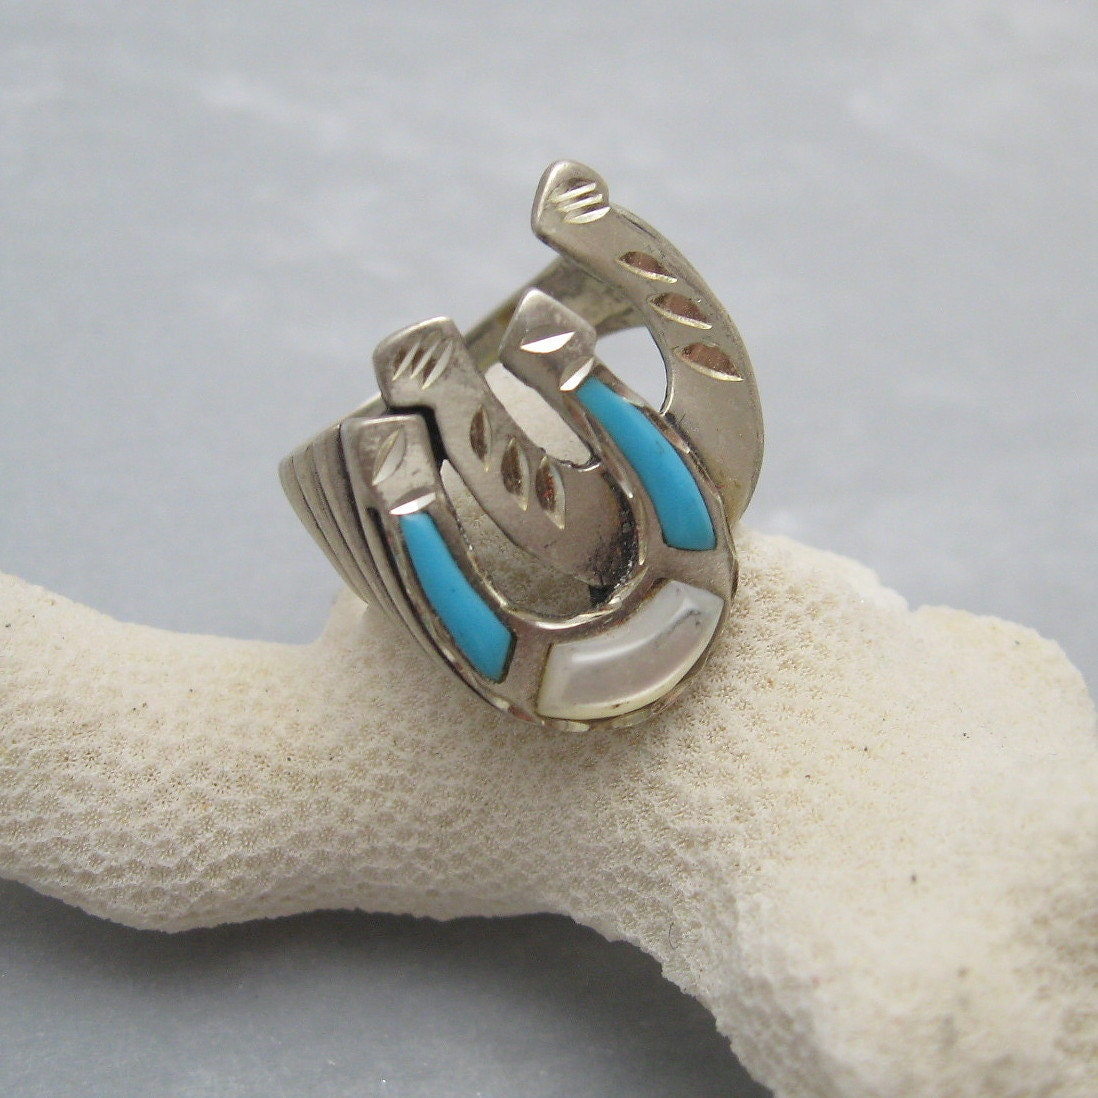 sterling horseshoe ring turquoise mop mens jewelry h653